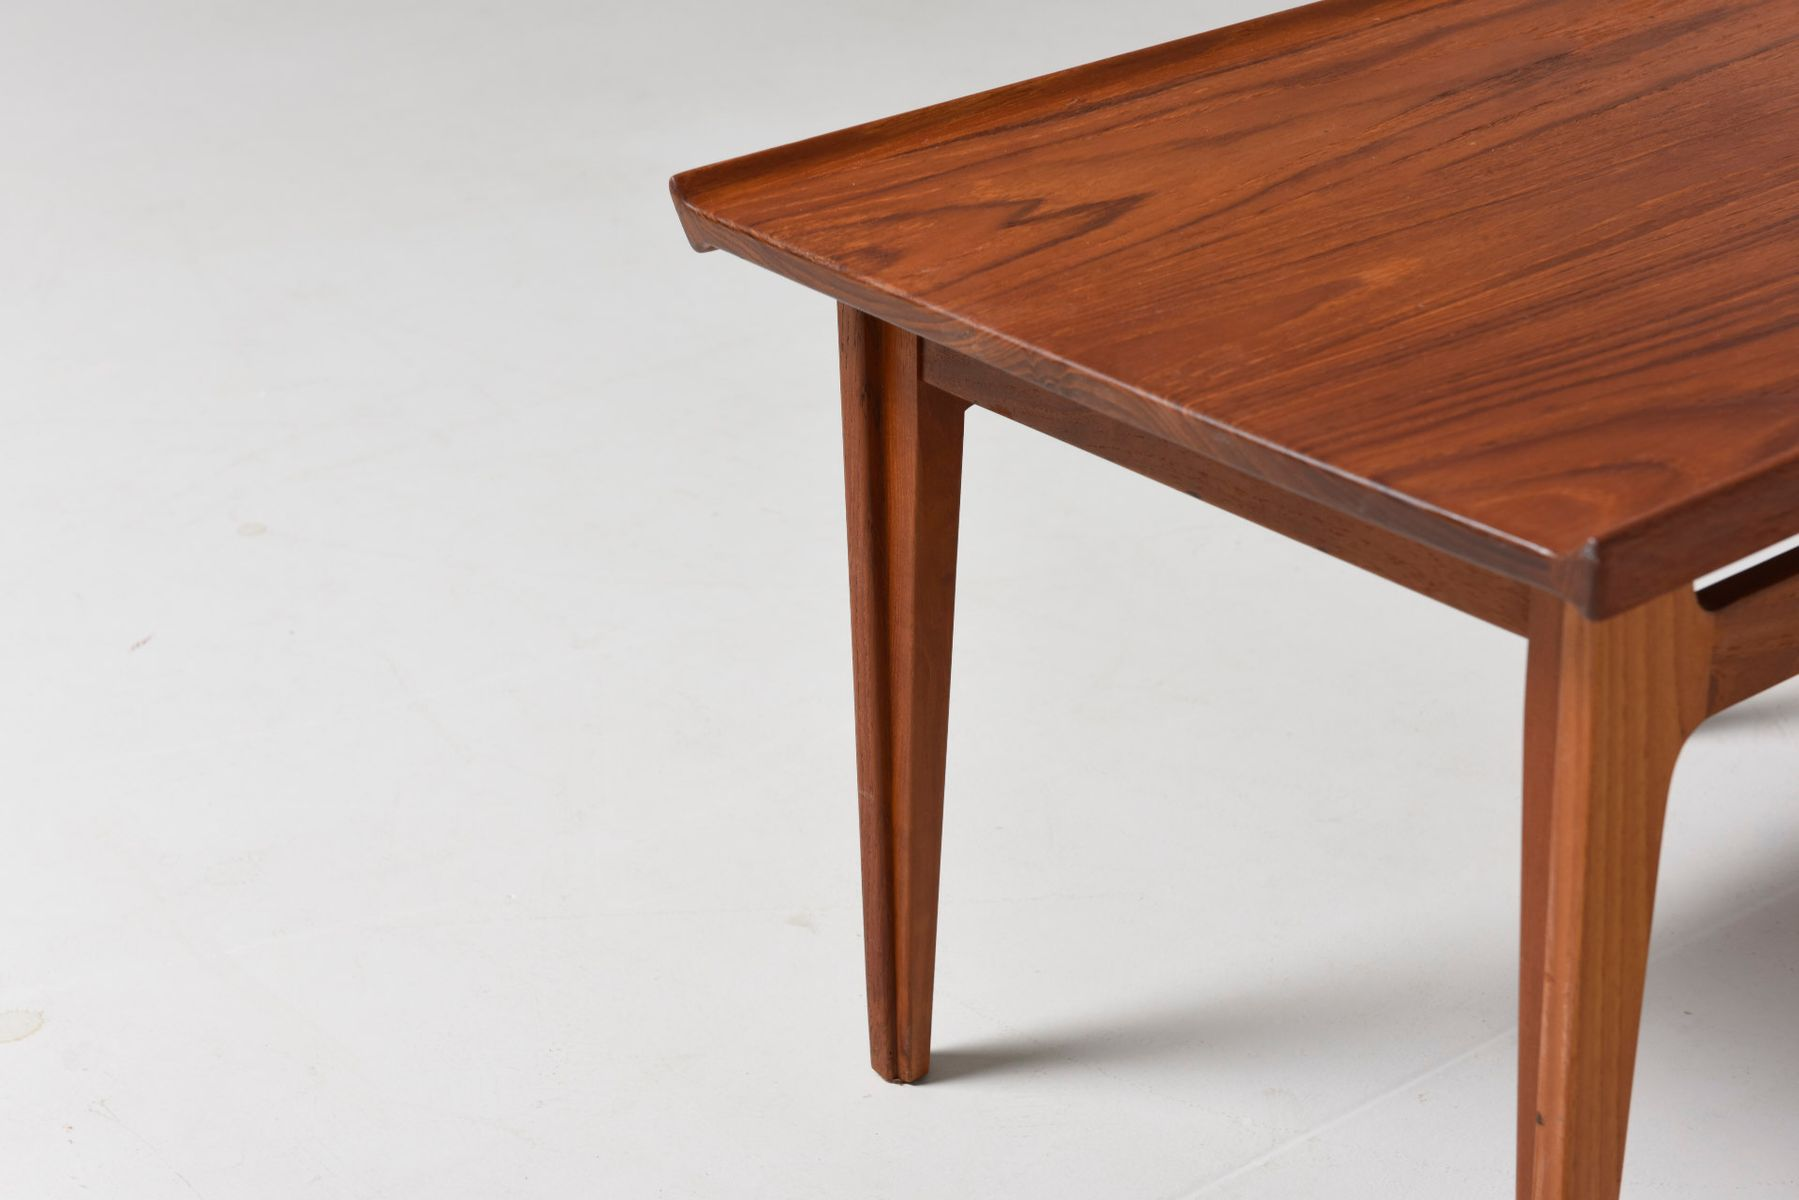 Vintage Side Table in Teak by Finn Juhl for France Sn for sale at